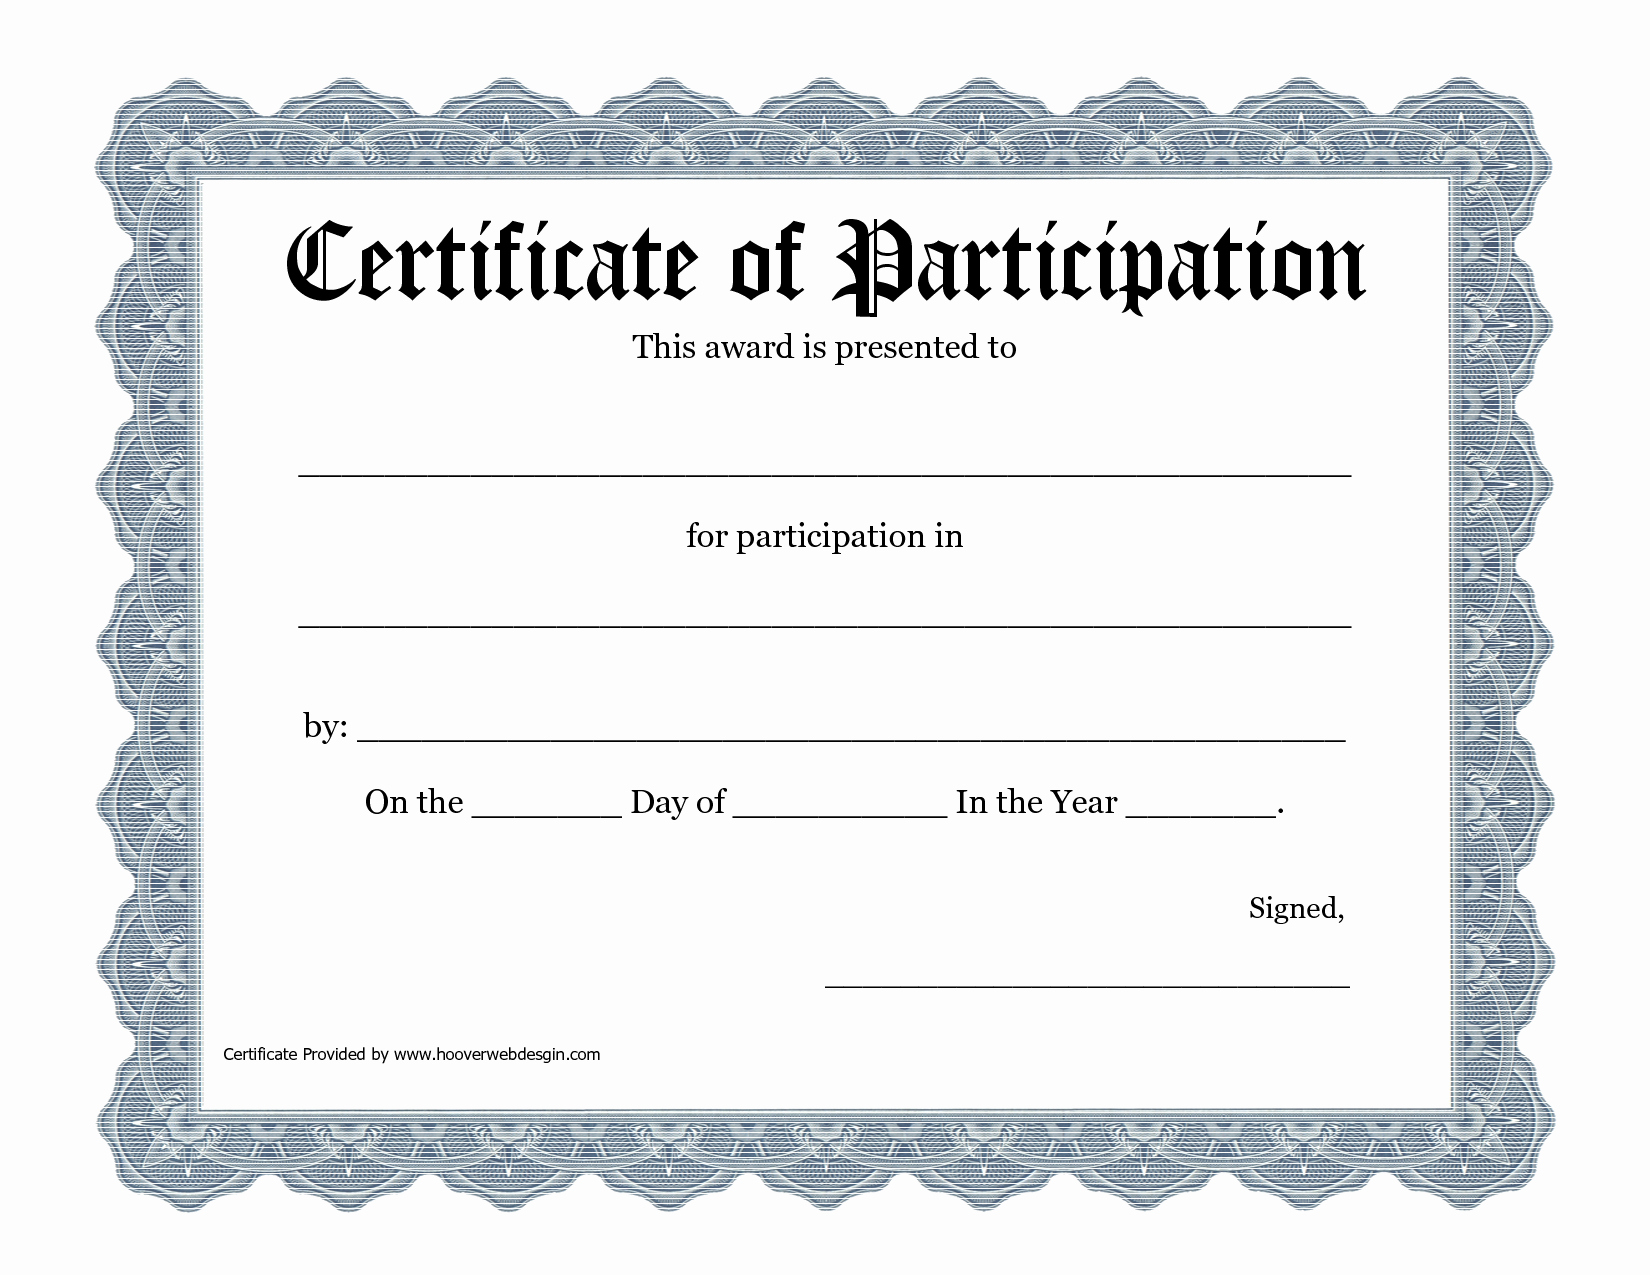 Participation Award Certificate Template Fresh No Thread About the Biggest Shooting In American History